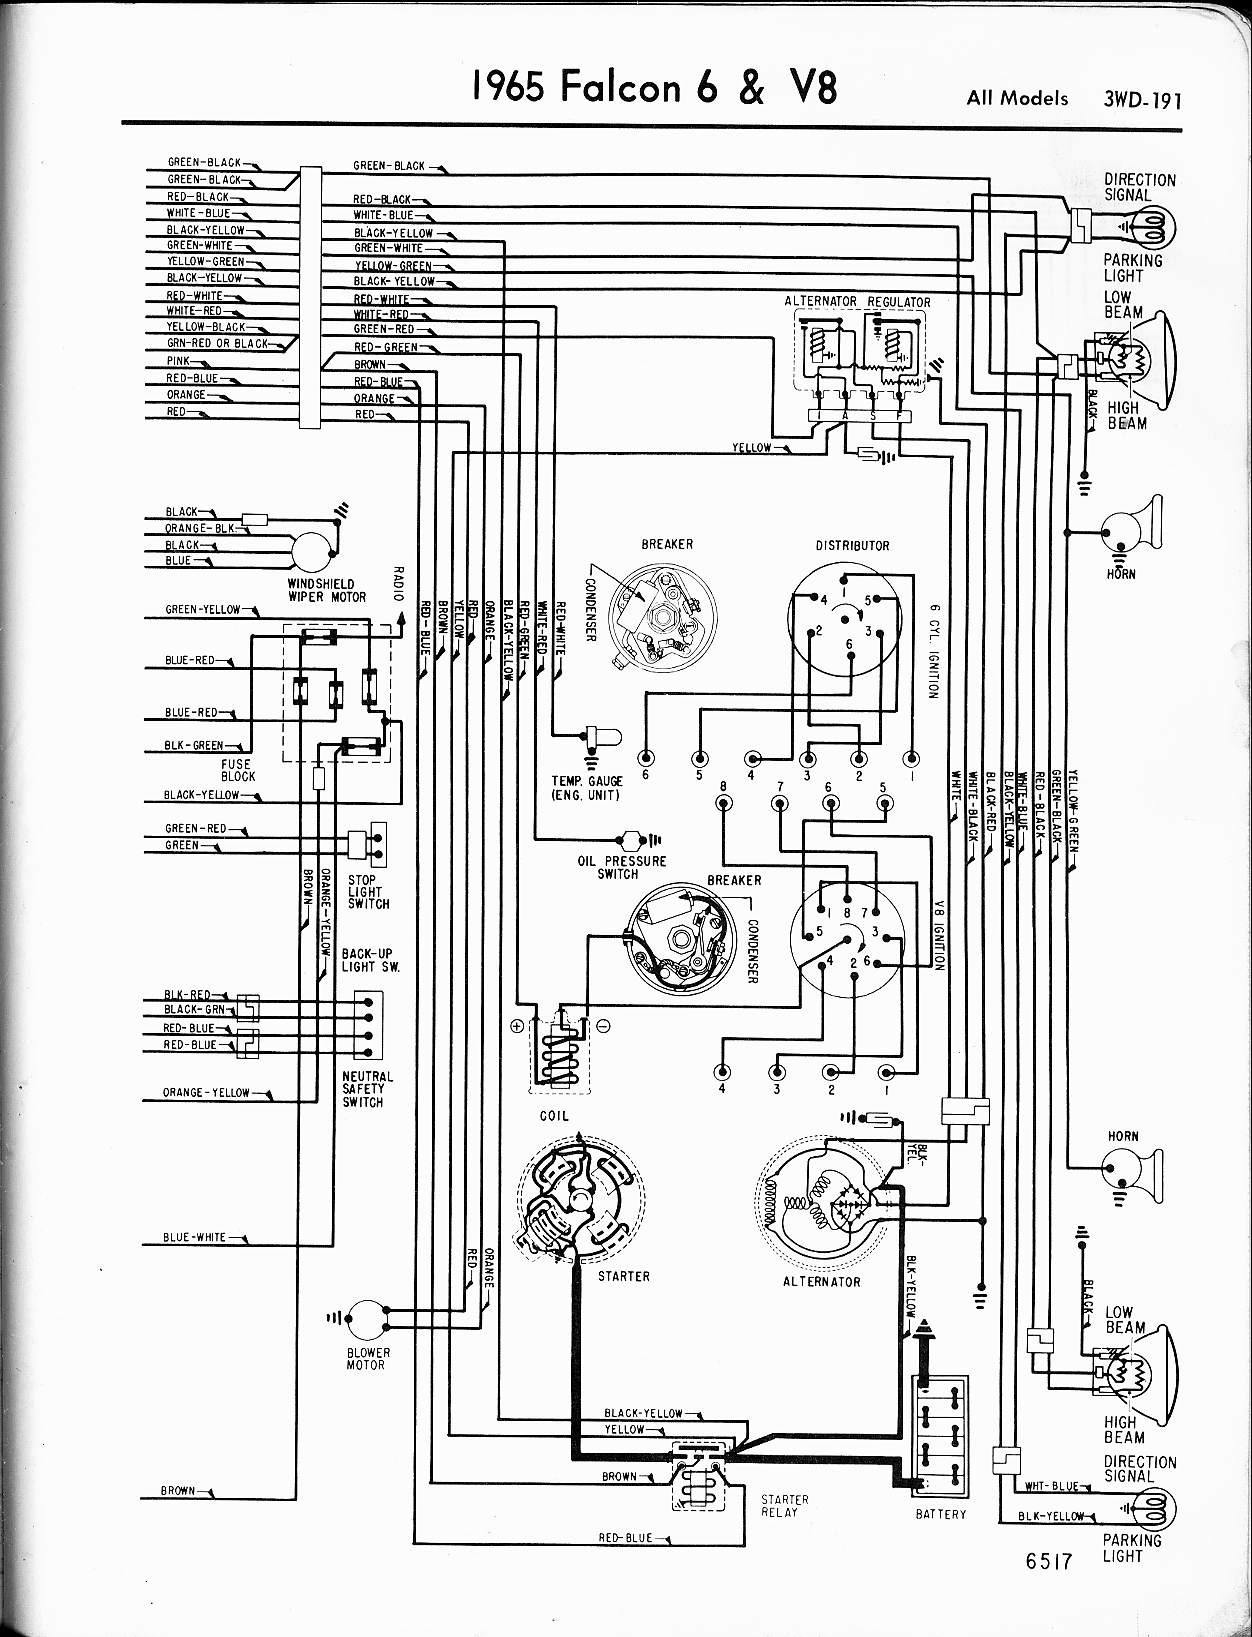 7 3 powerstroke injector diagram